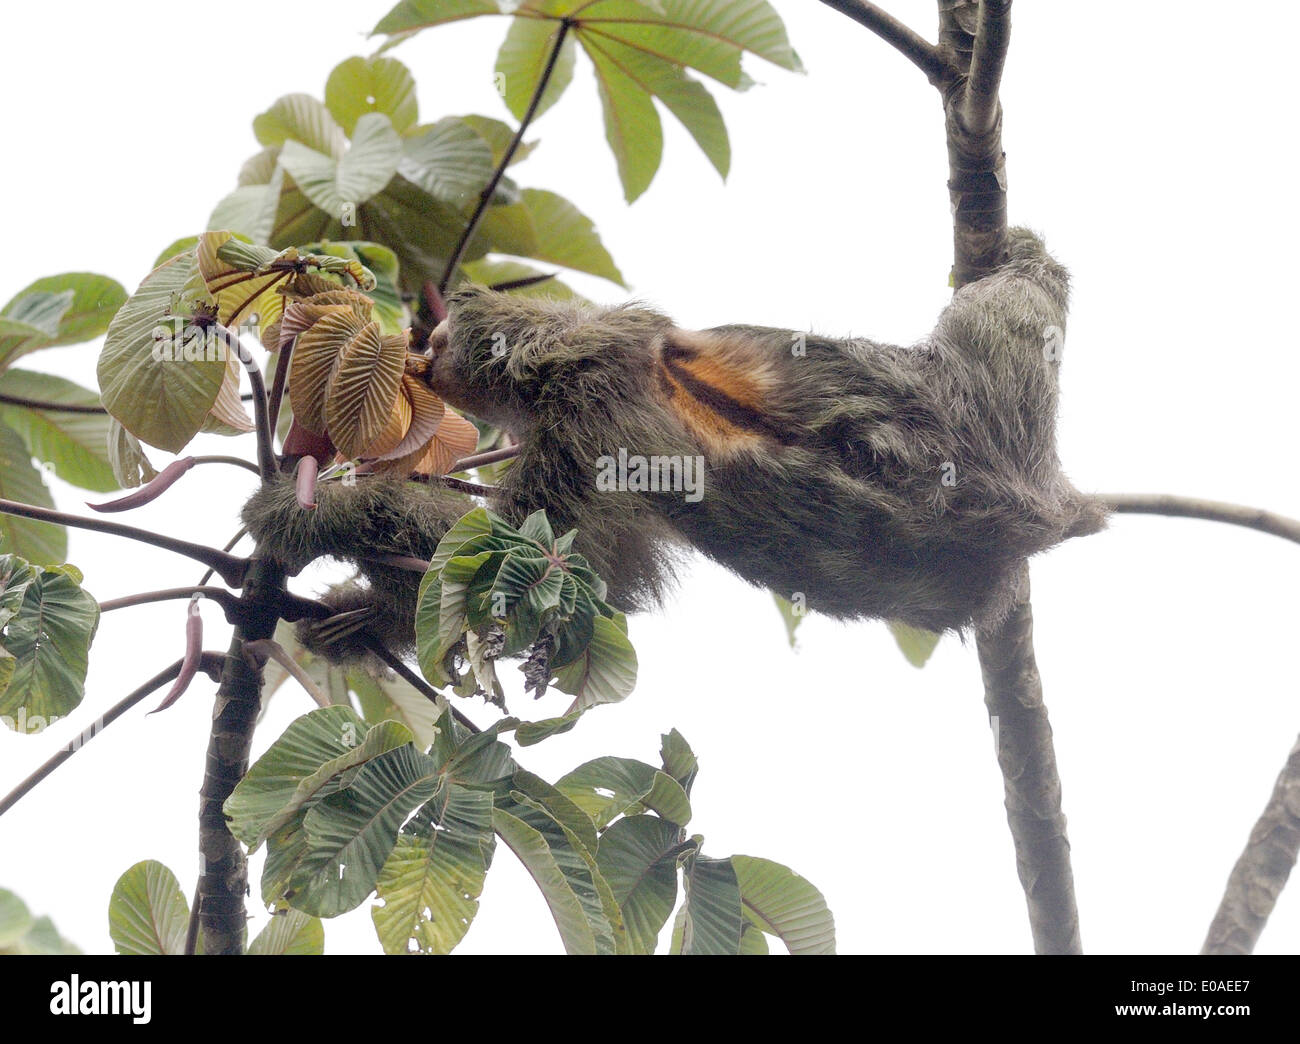 A Three-toed Sloth or Brown-throated Sloth (Bradypus variegatus) feeds on leaves. Tortuguero National Park,  Costa Rica Stock Photo